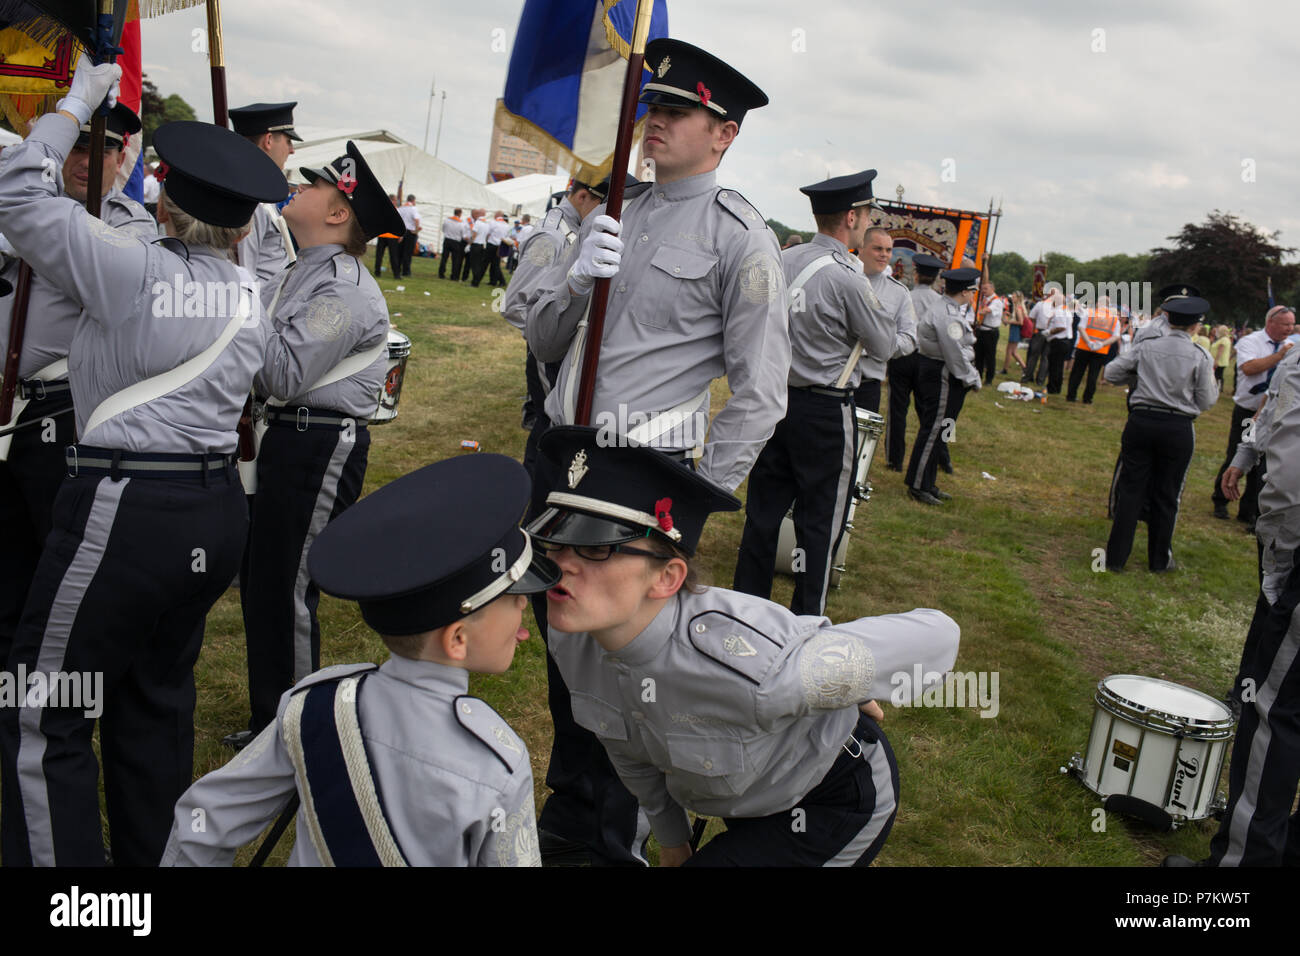 Glasgow, Scotland, on 7 July 2018. The annual Parade of Orange Order Lodge bands, organised by County Grand Orange Lodge of Glasgow.  The annual prade celebrates Prince William of Orange's victory over King James II at the Battle of the Boyne in 1690. Image Credit: Jeremy Sutton-Hibbert/Alamy Live News. - Stock Image